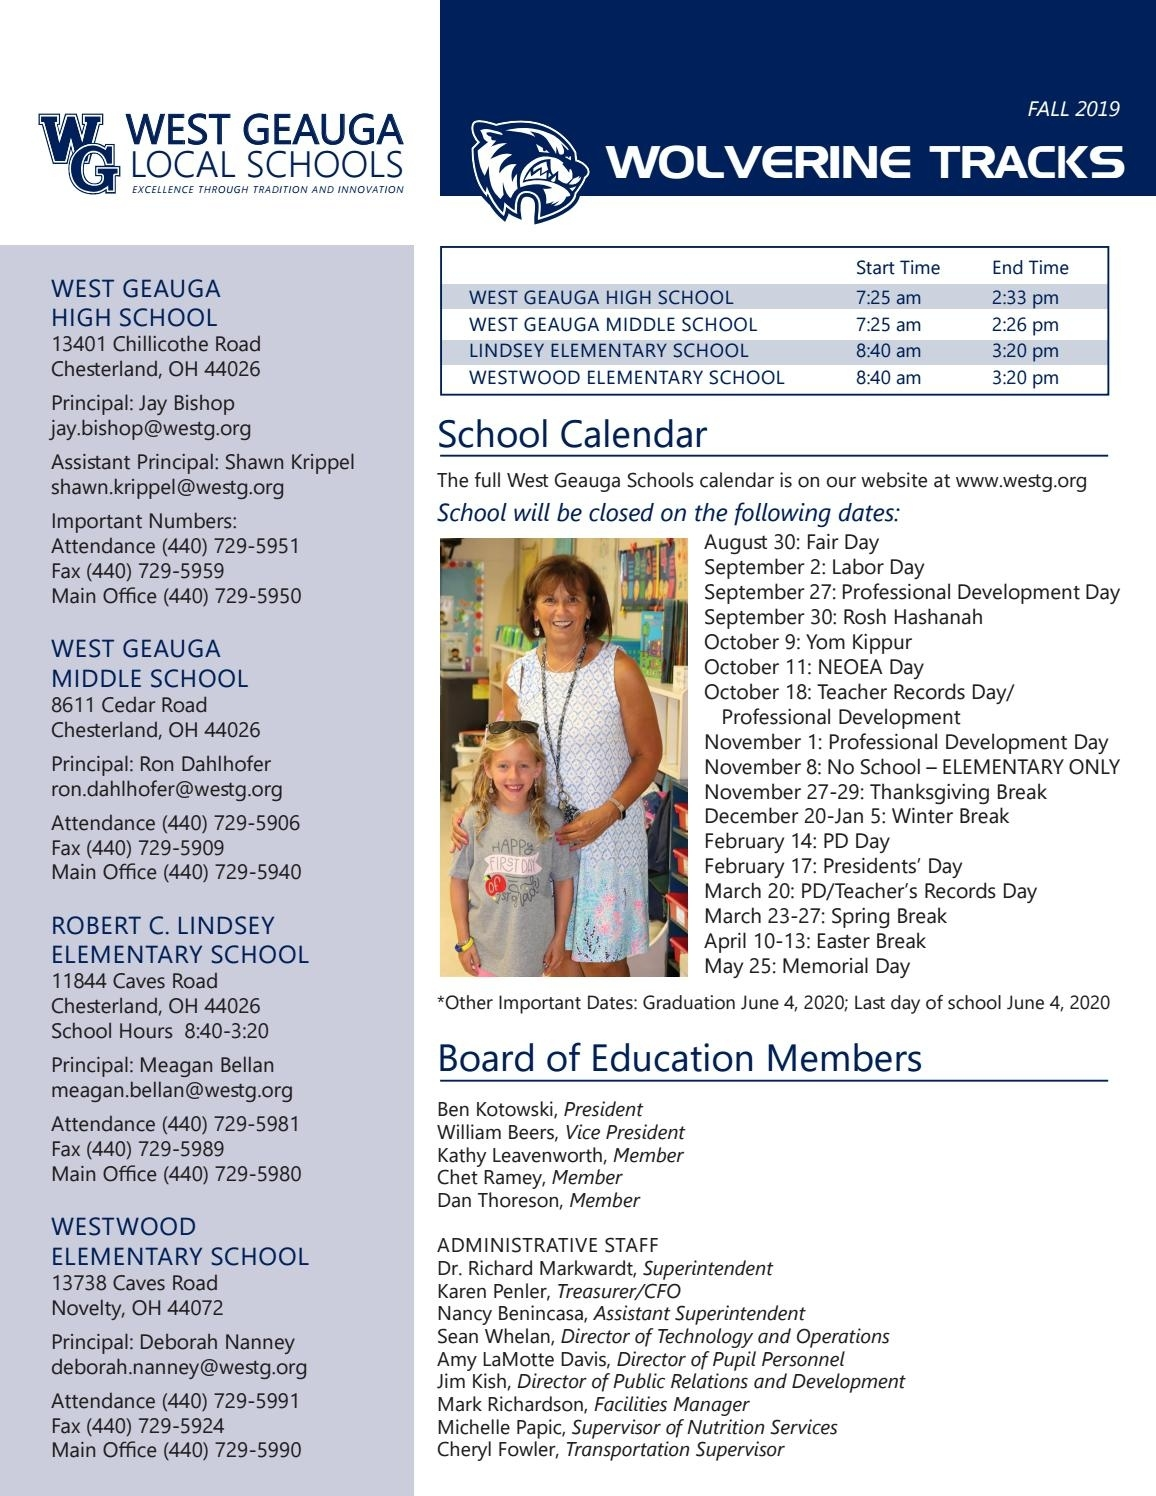 Wolverine Tracks 2019 - Fall Edition By Westg - Issuu Remarkable West Geauga School Calendar 2017